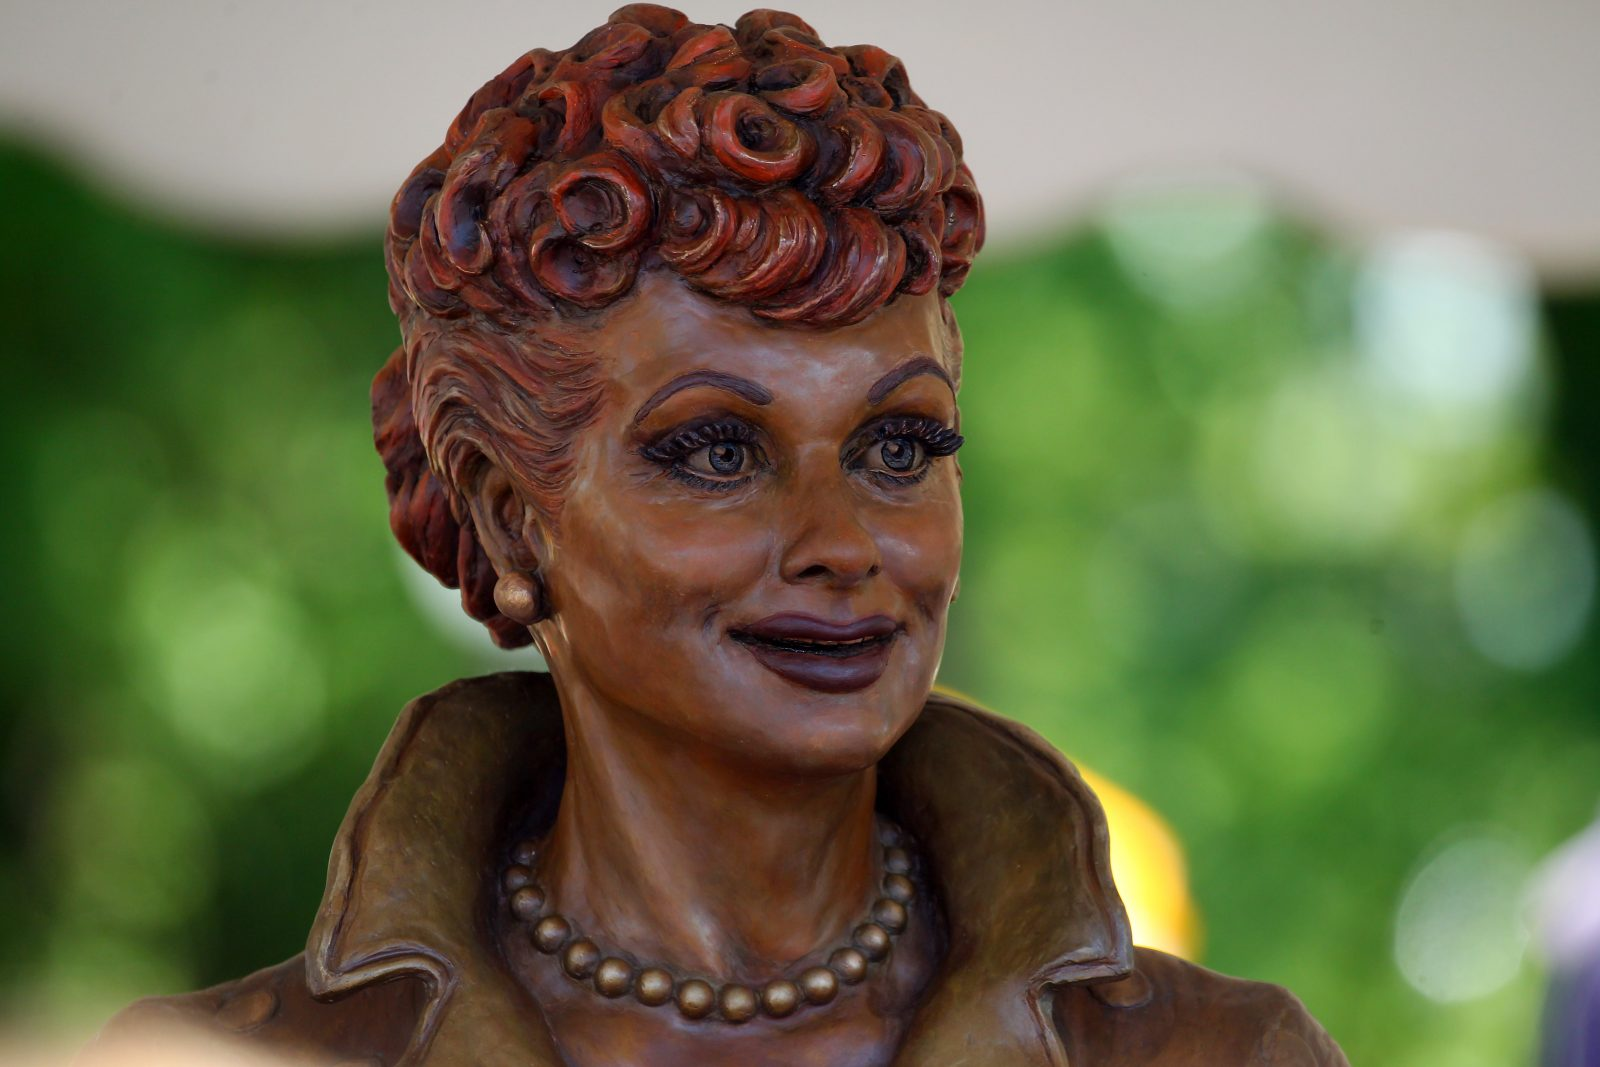 Lucille Ball statues in Western New York park vandalized